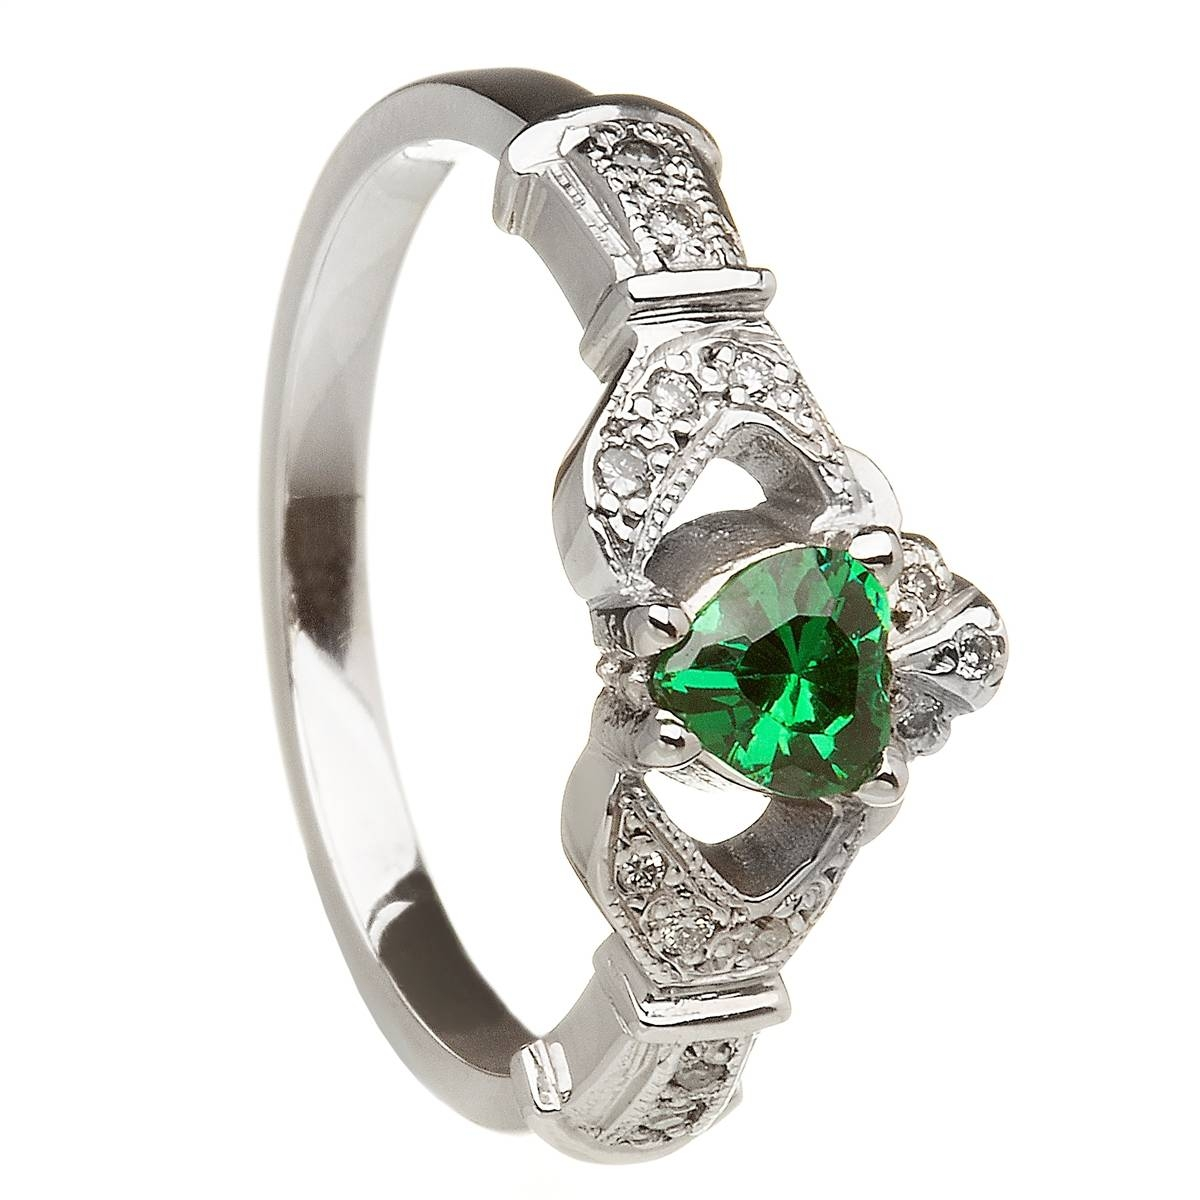 14K White Gold Emerald Set Heart Claddagh Ring & Wedding Ring Set Regarding Irish Emerald Engagement Rings (Gallery 14 of 15)